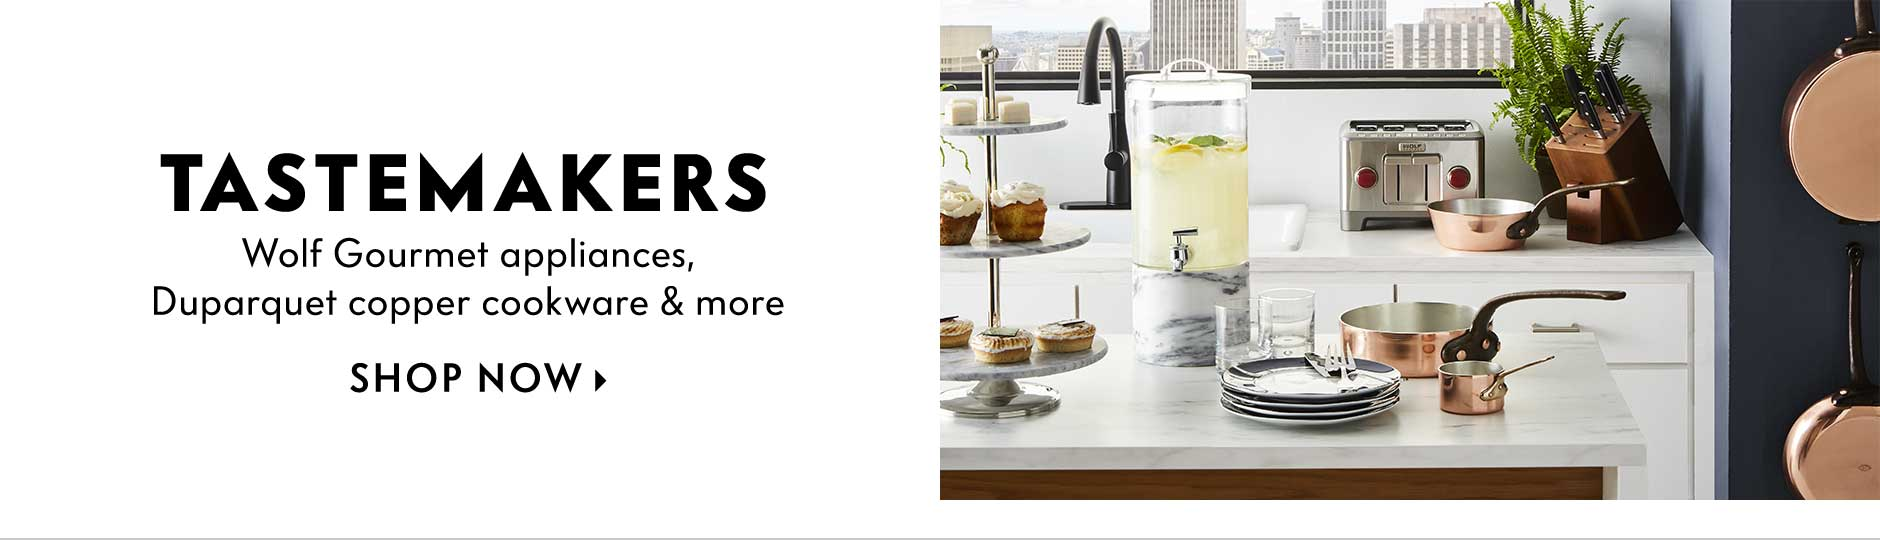 Tastemakers - Wolf Gourmet appliances, Duparquet copper cookware & more top choices